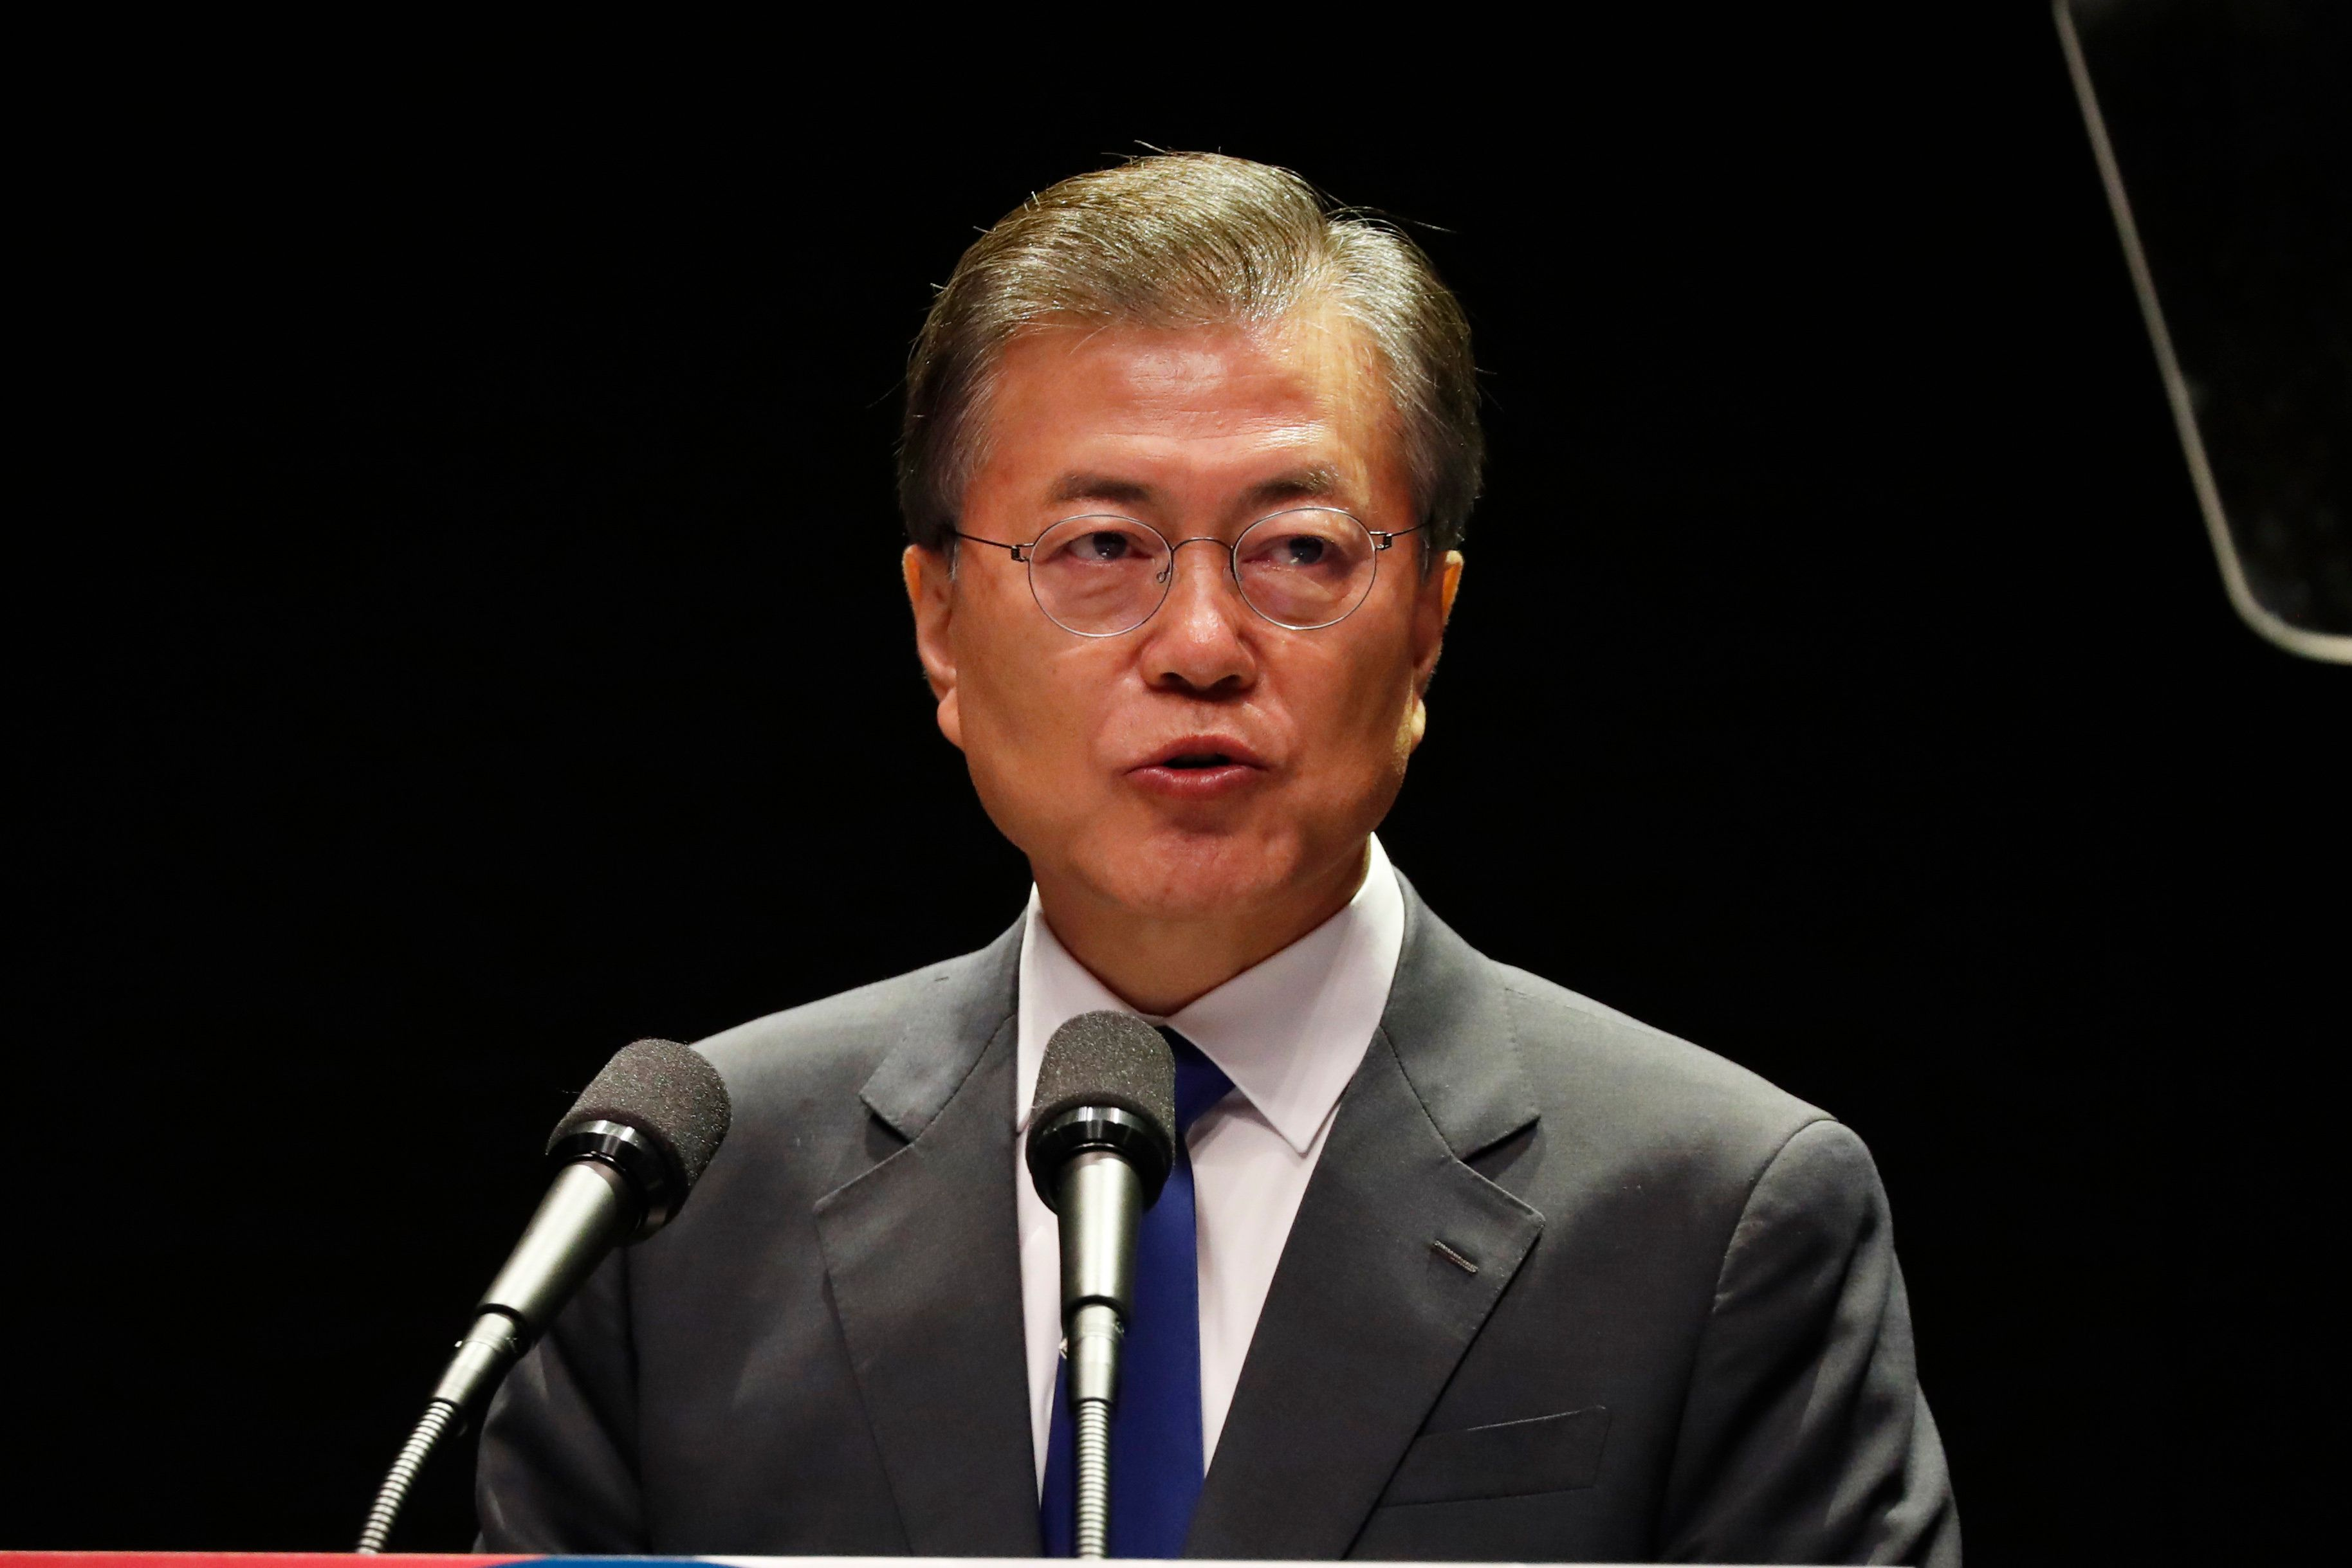 South Korea's President Moon Jae-In delivers a speech during celebrations marking the 72th anniversary of Korea's liberation from Japanese colonial rule in 1945, in Seoul on August 15, 2017. South Korea marked its Liberation day, the 72nd anniversary of independence from Japanese colonial rule, with ceremonies in Seoul. / AFP PHOTO / POOL / JEON HEON-KYUN        (Photo credit should read JEON HEON-KYUN/AFP/Getty Images)